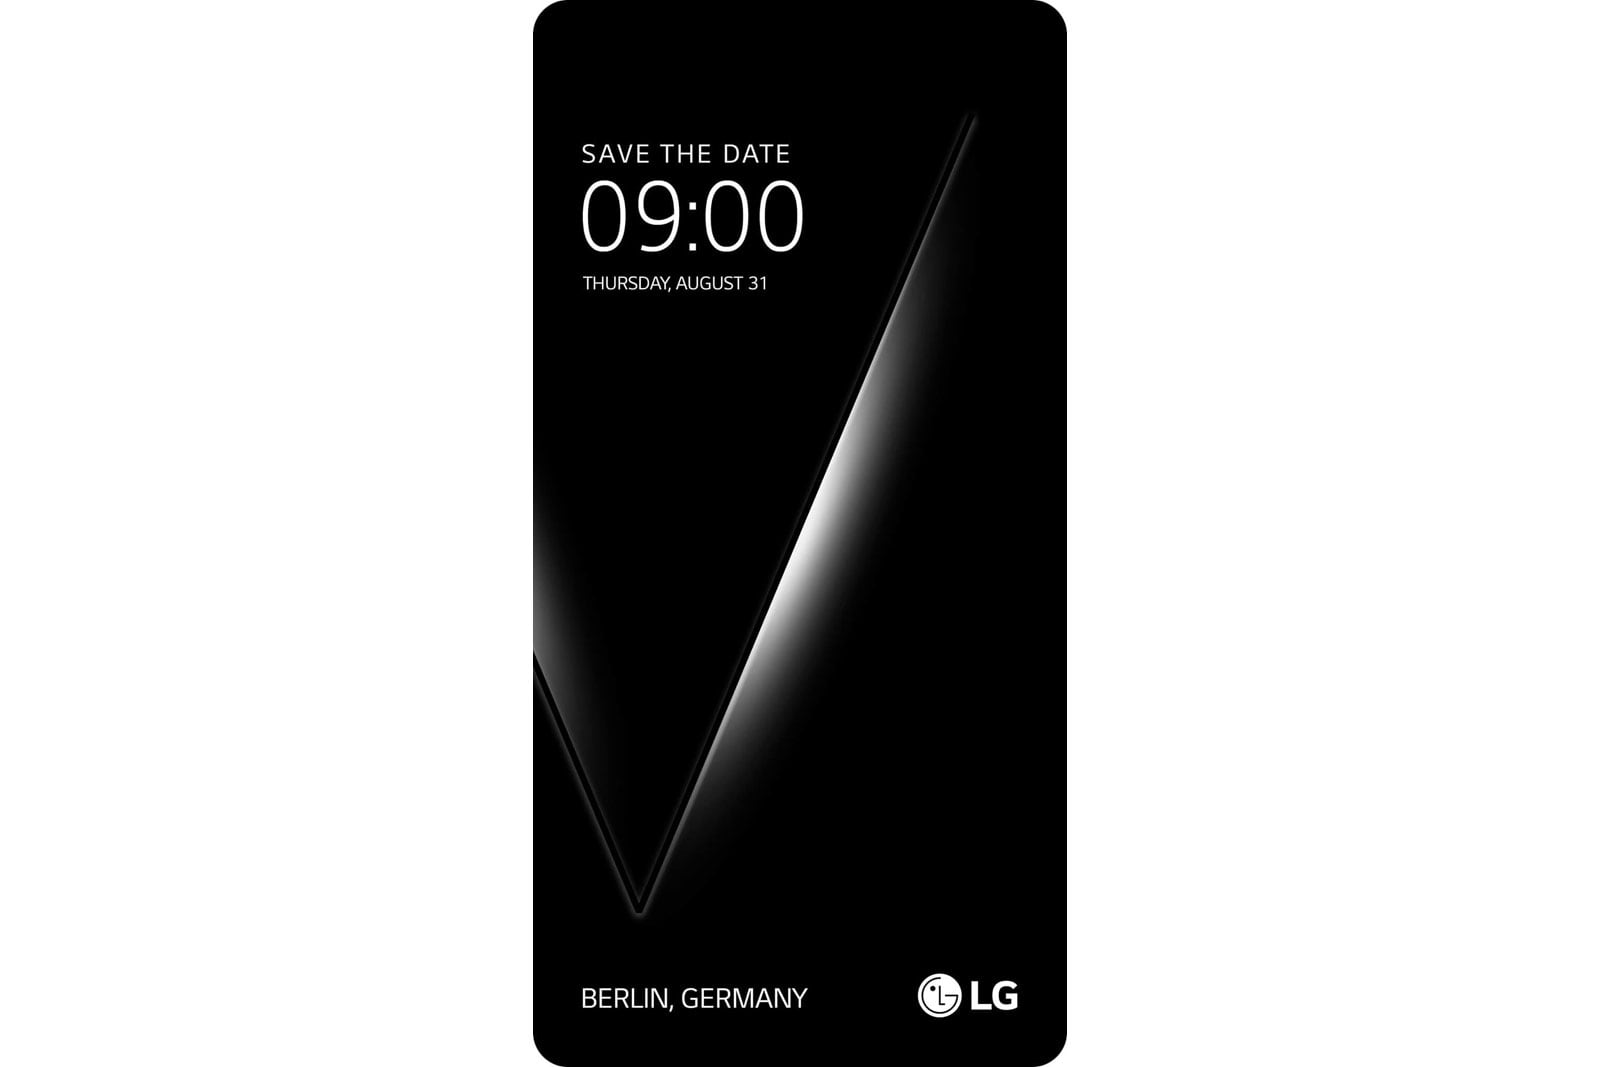 LG's V30 offers customizable high-quality audio